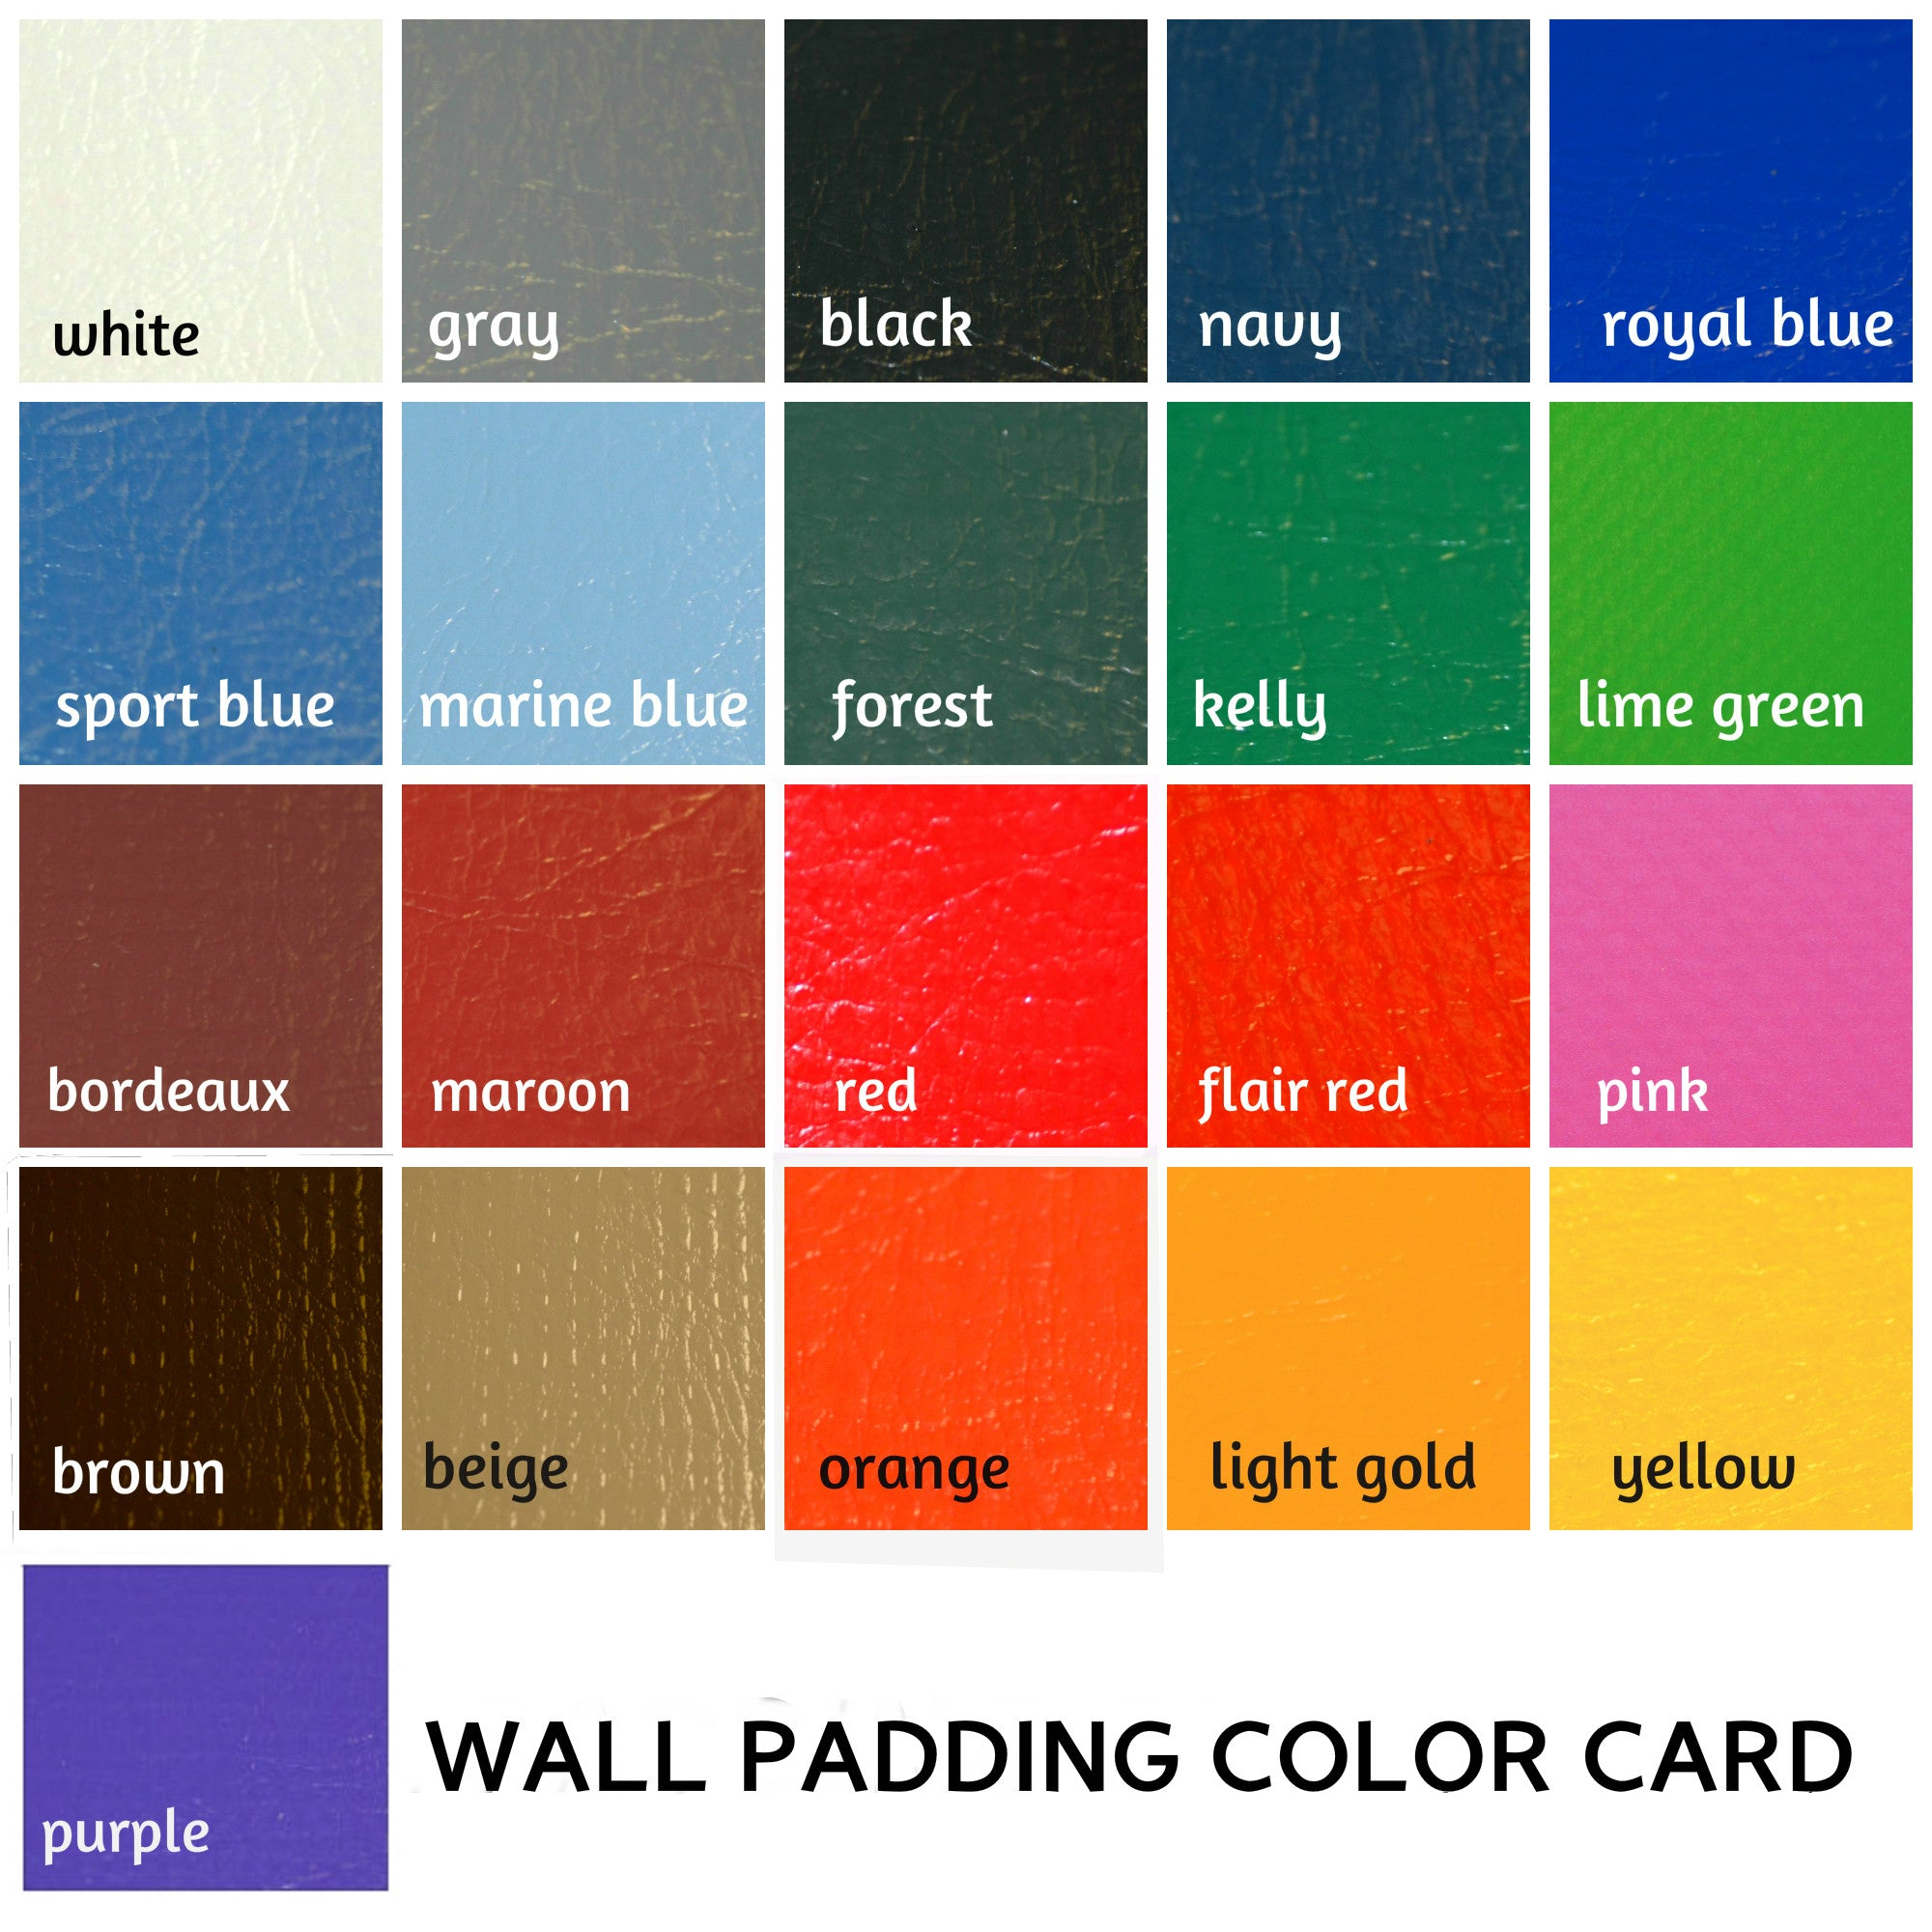 Color Choices for Custom Wall Padding